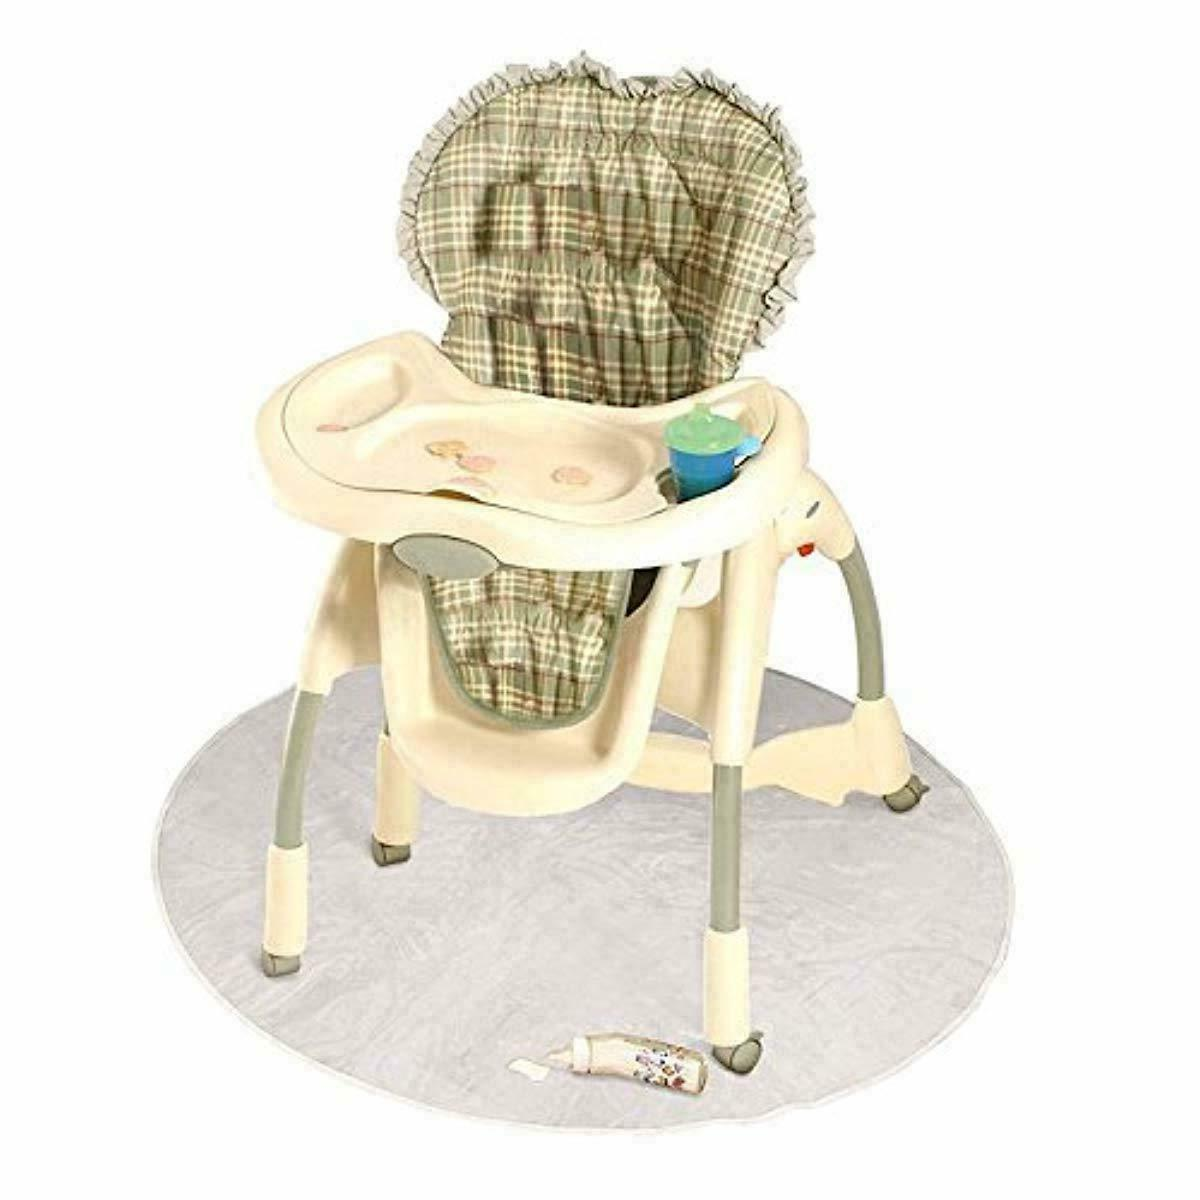 50 Baby High Chair Toddler Floor Floor Clear